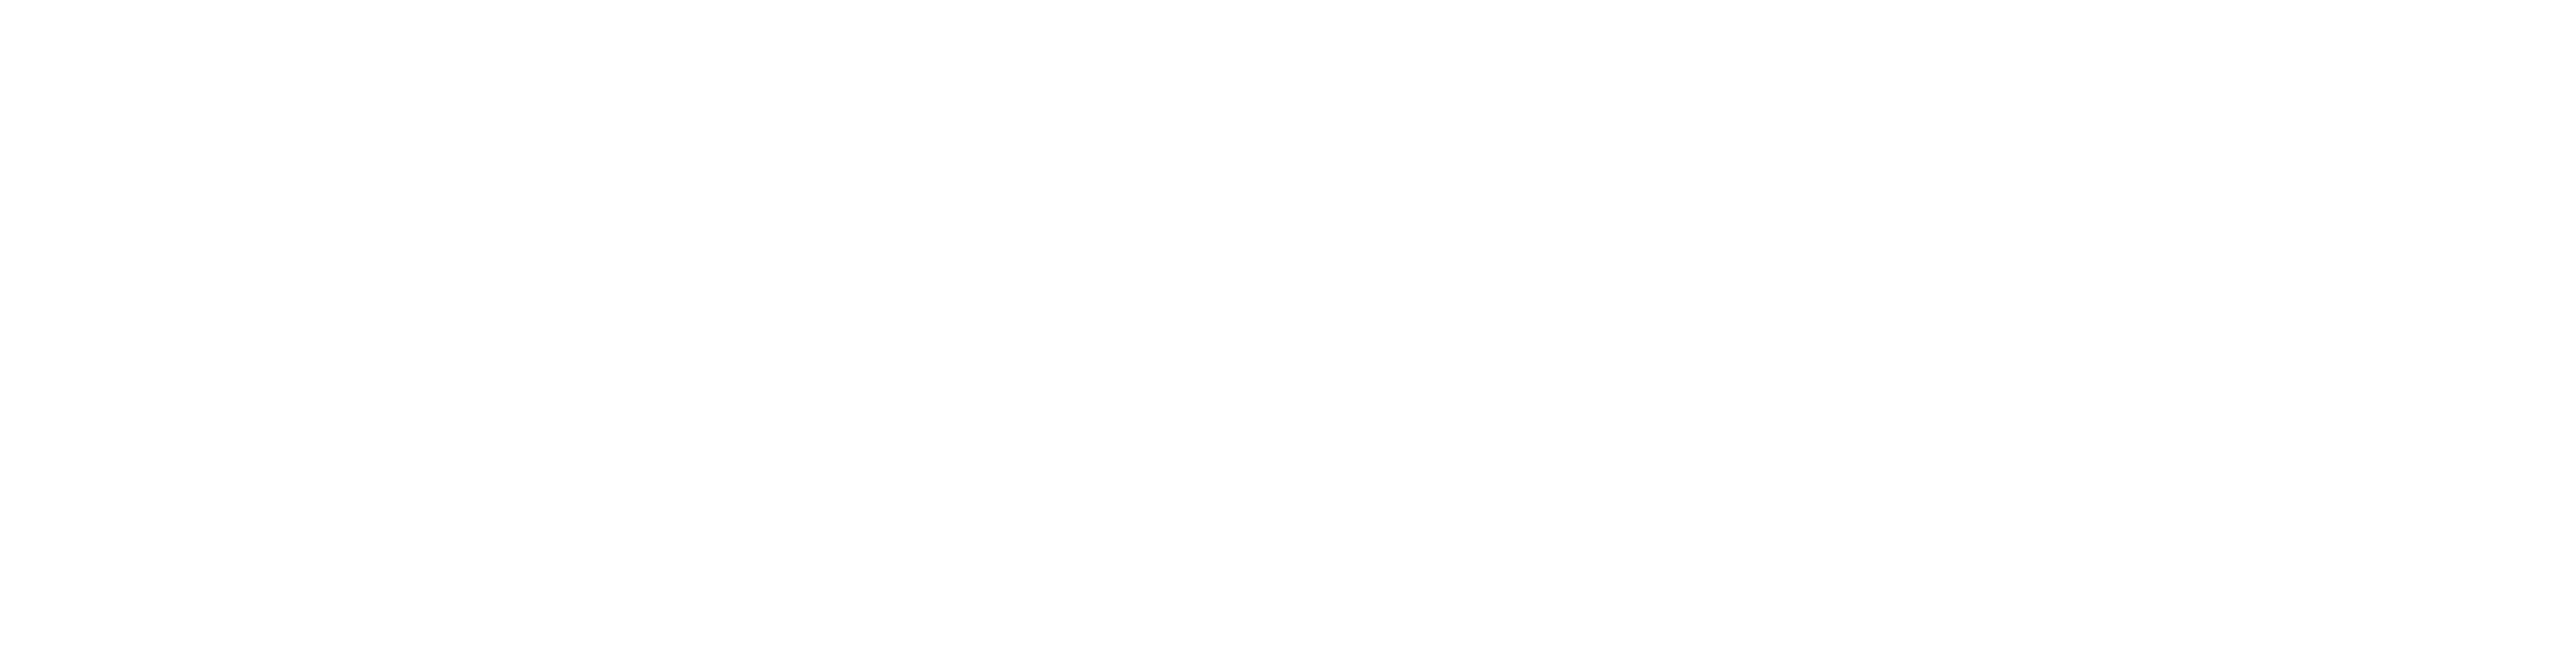 Institute for the Science of Teaching & Learning